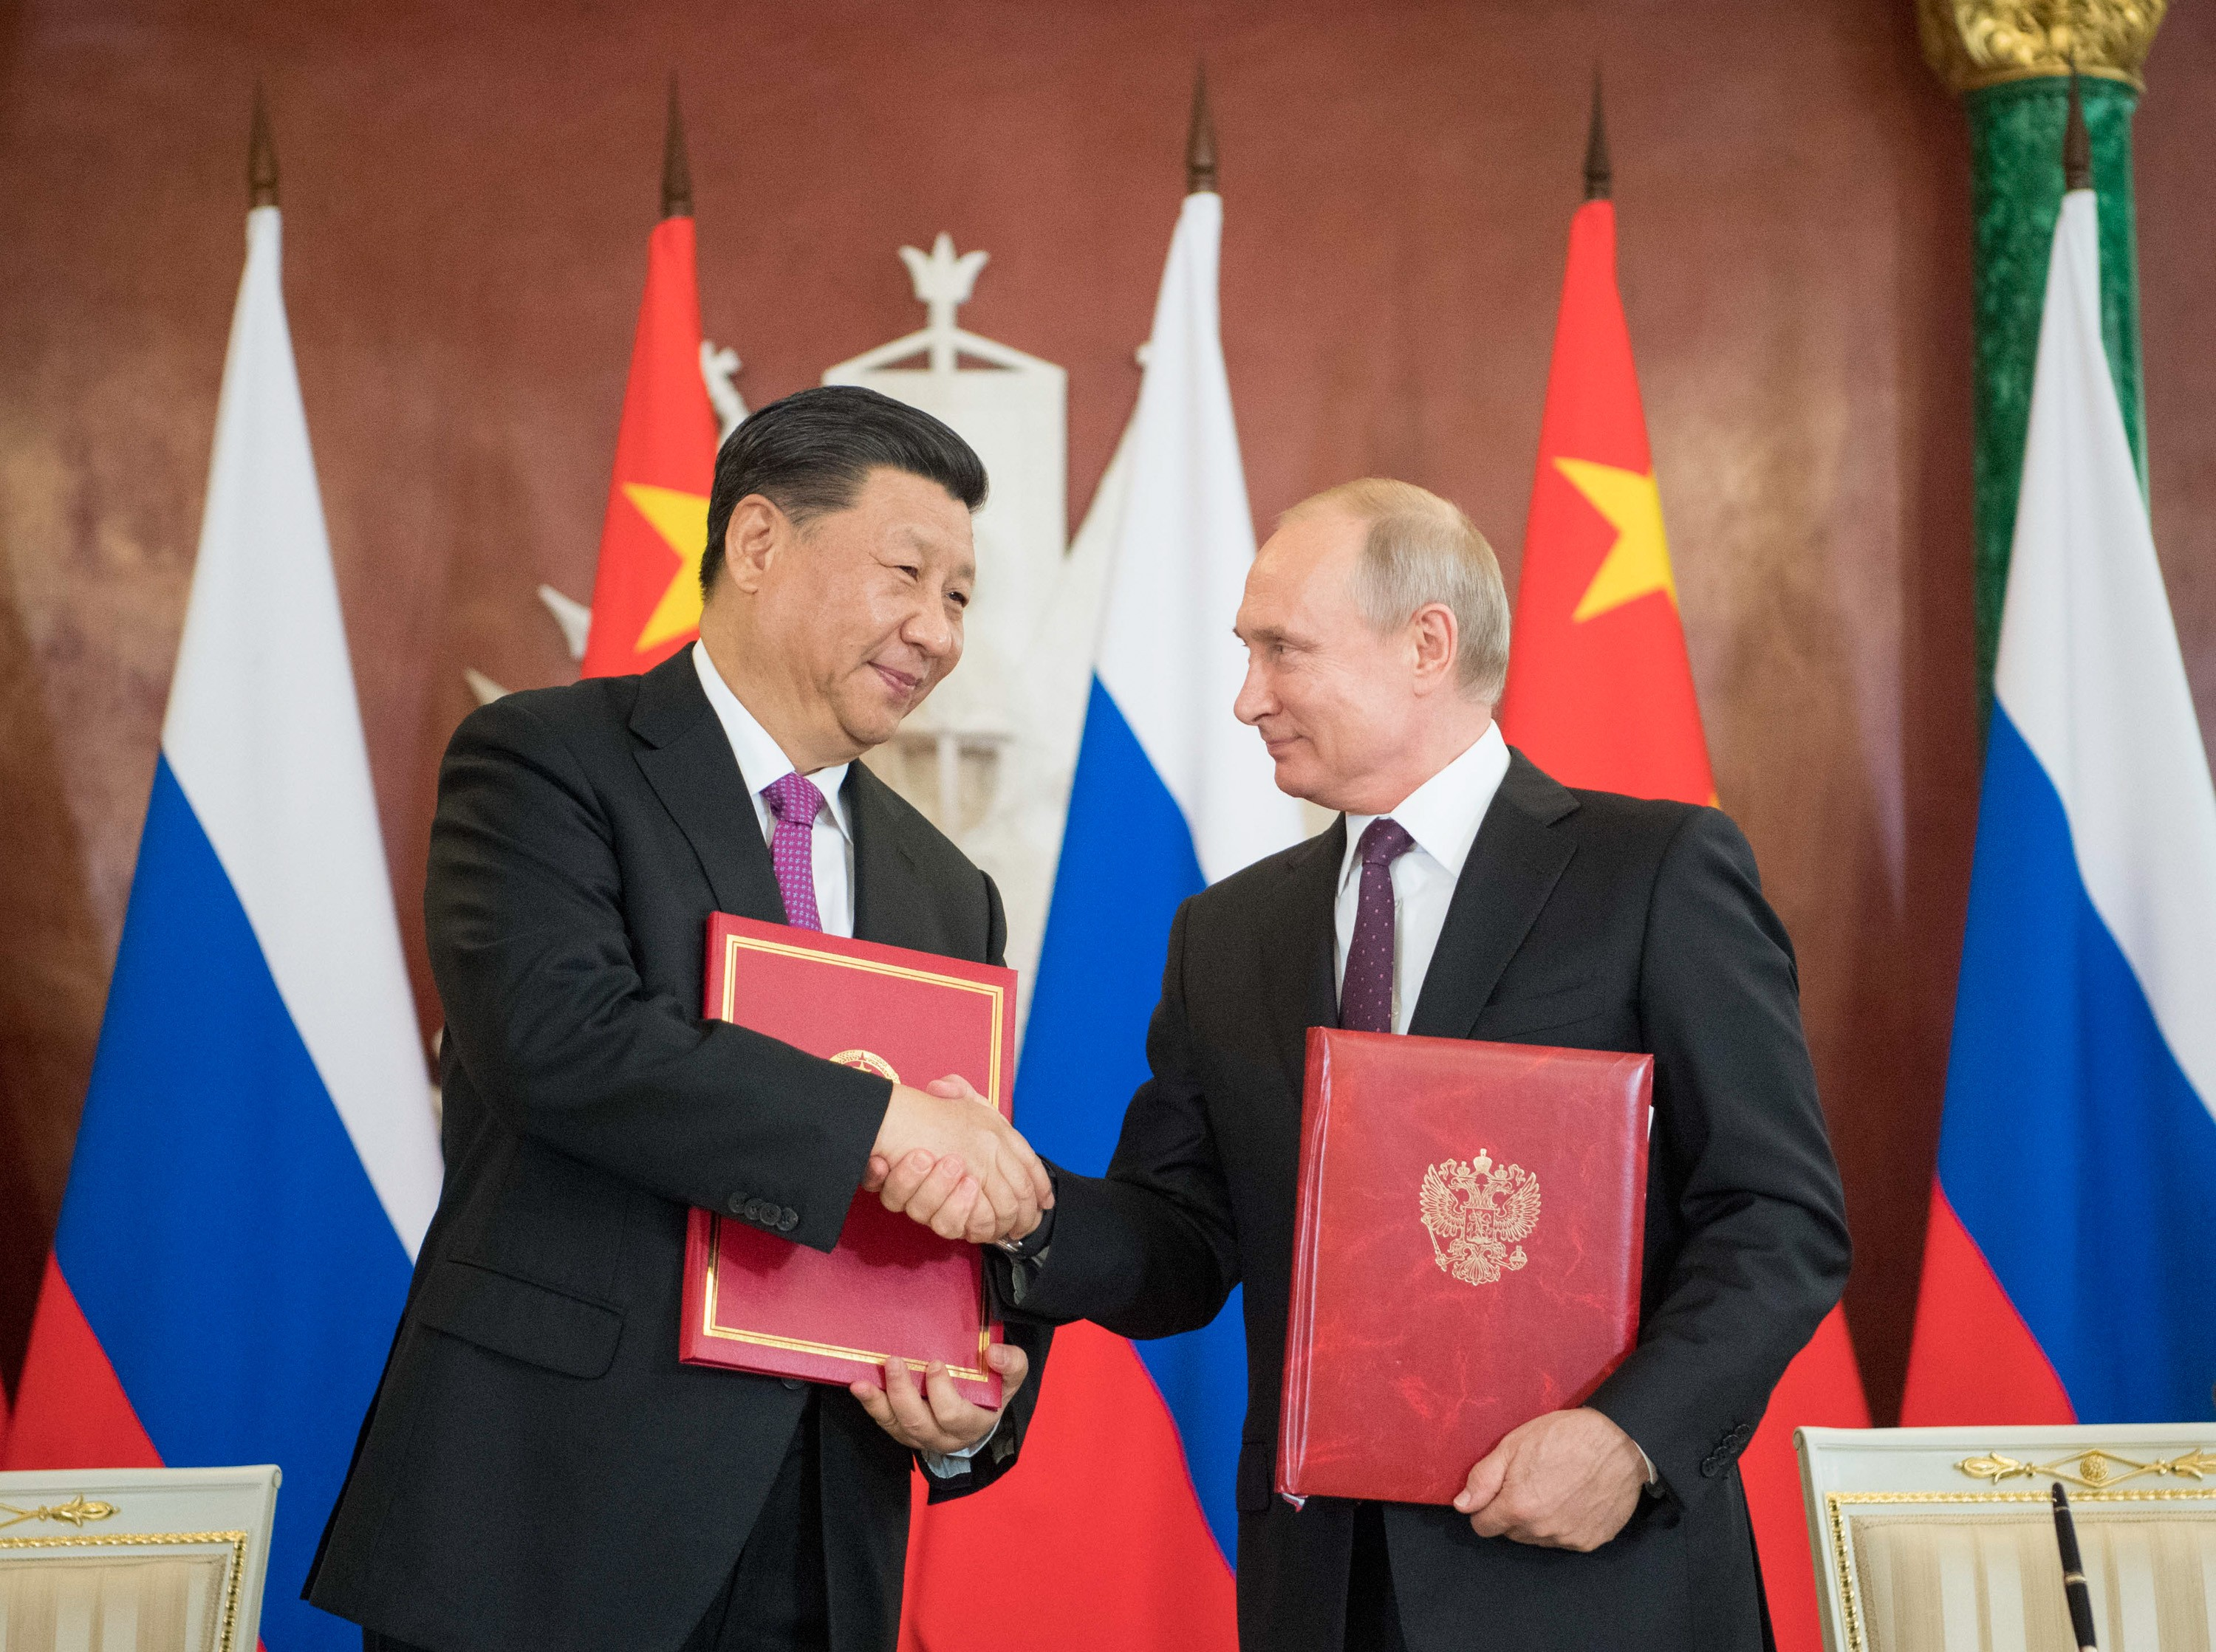 Russia And China Sign Deals Worth Us 20 Billion As Xi Jinping And Vladimir Putin S Growing Friendship Bears Fruit South China Morning Post